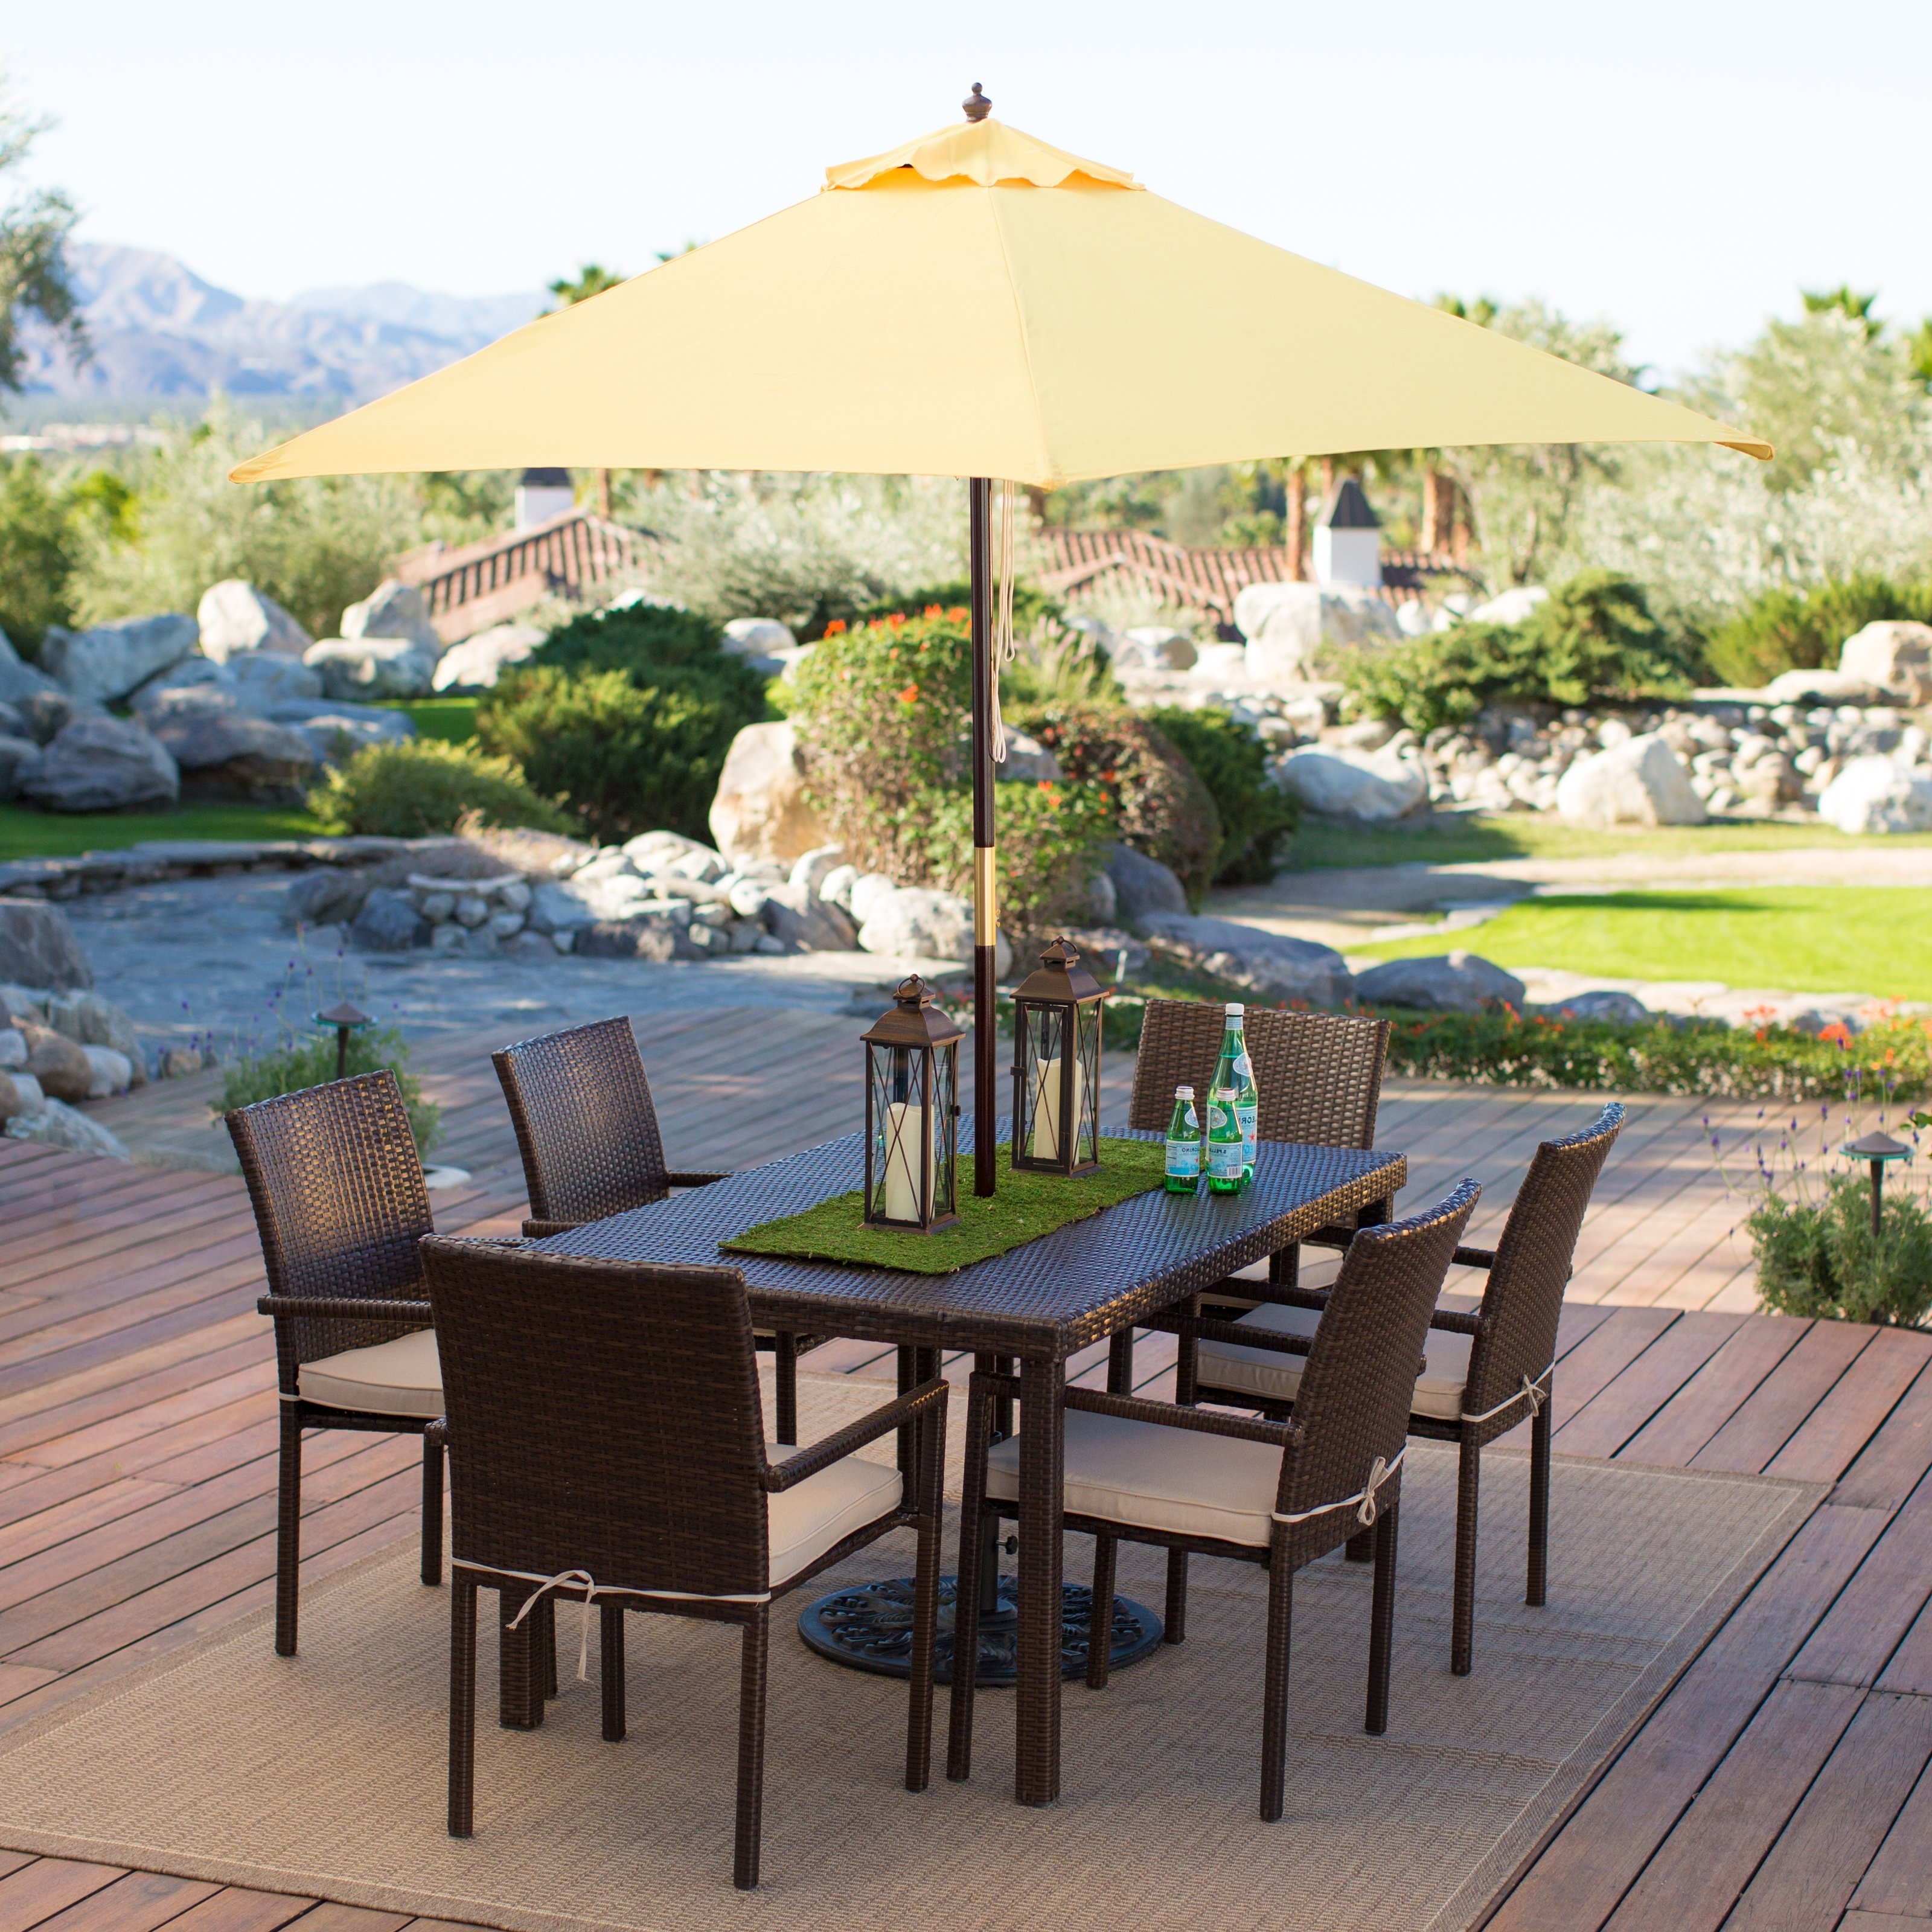 Most Popular Garden: Enchanting Outdoor Patio Decor Ideas With Patio Umbrellas With Rectangular Patio Umbrellas (View 9 of 20)